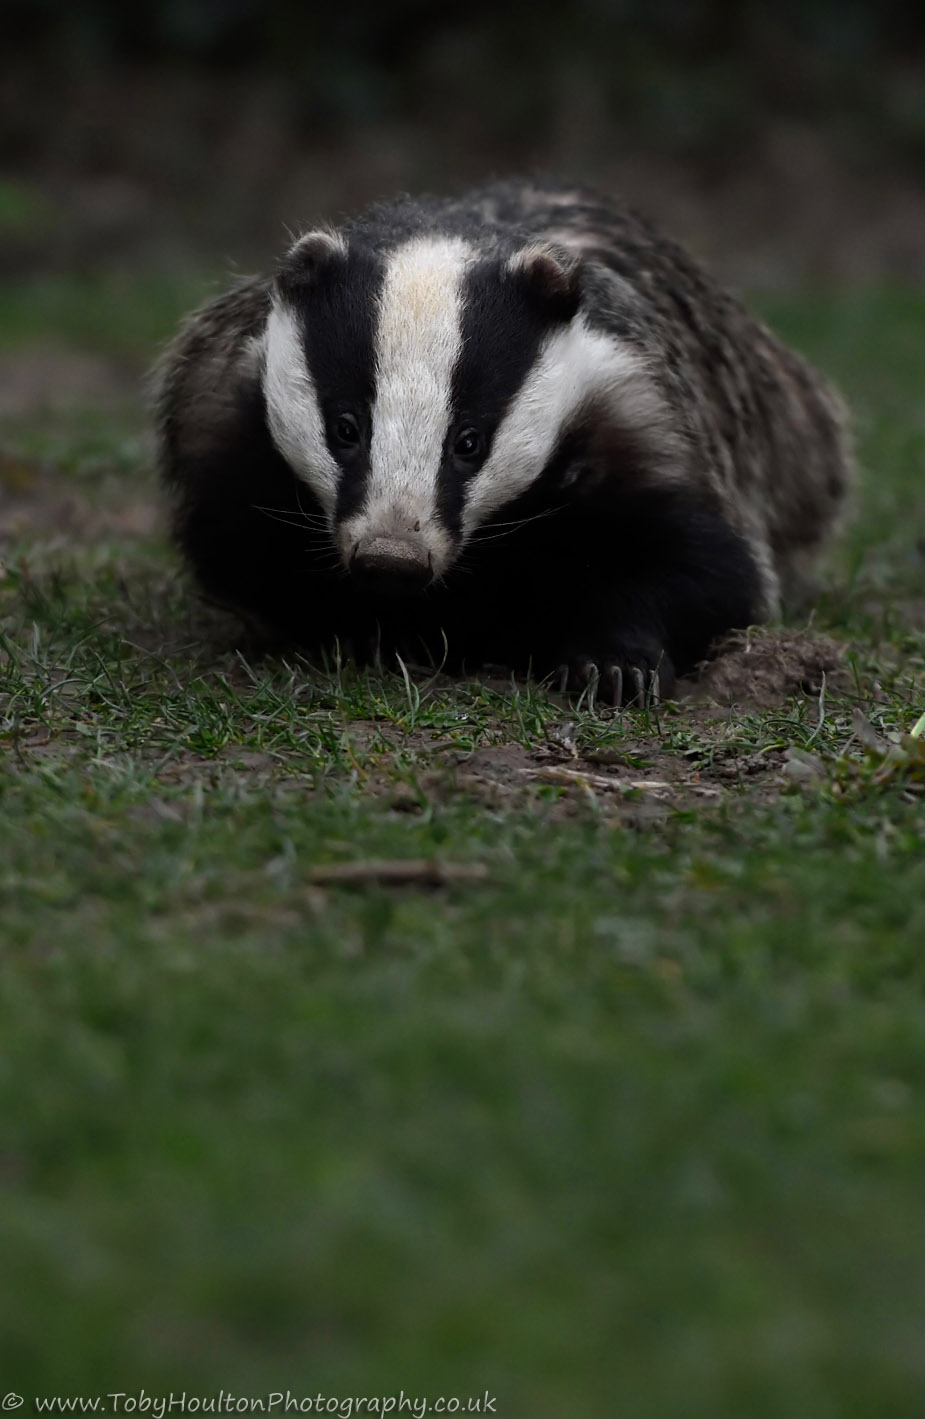 Badger - Nikon D7200, Nikon 70-200mm, 1/100, f/4, ISO1600